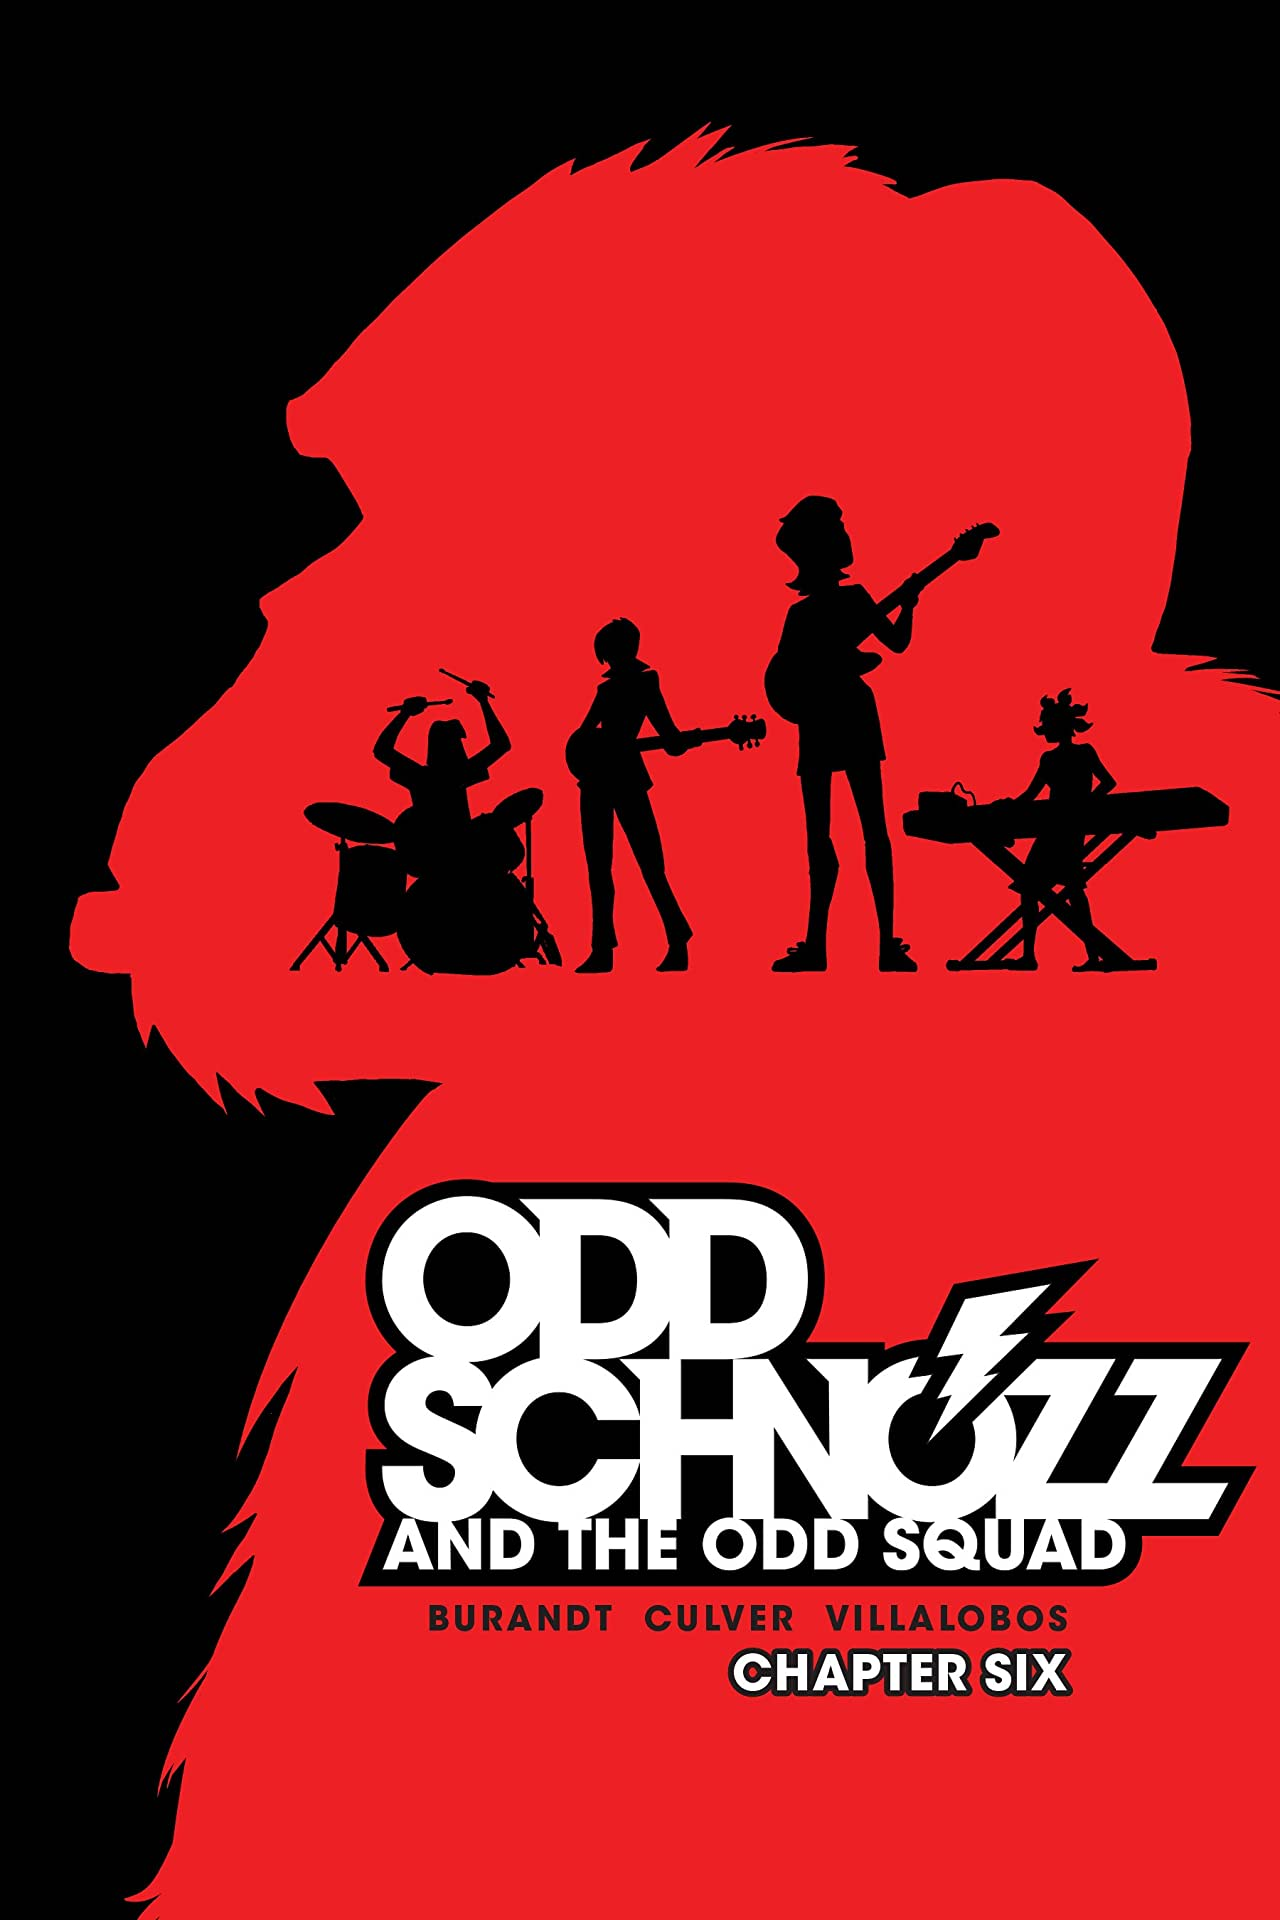 Odd Schnozz & the Odd Squad #6